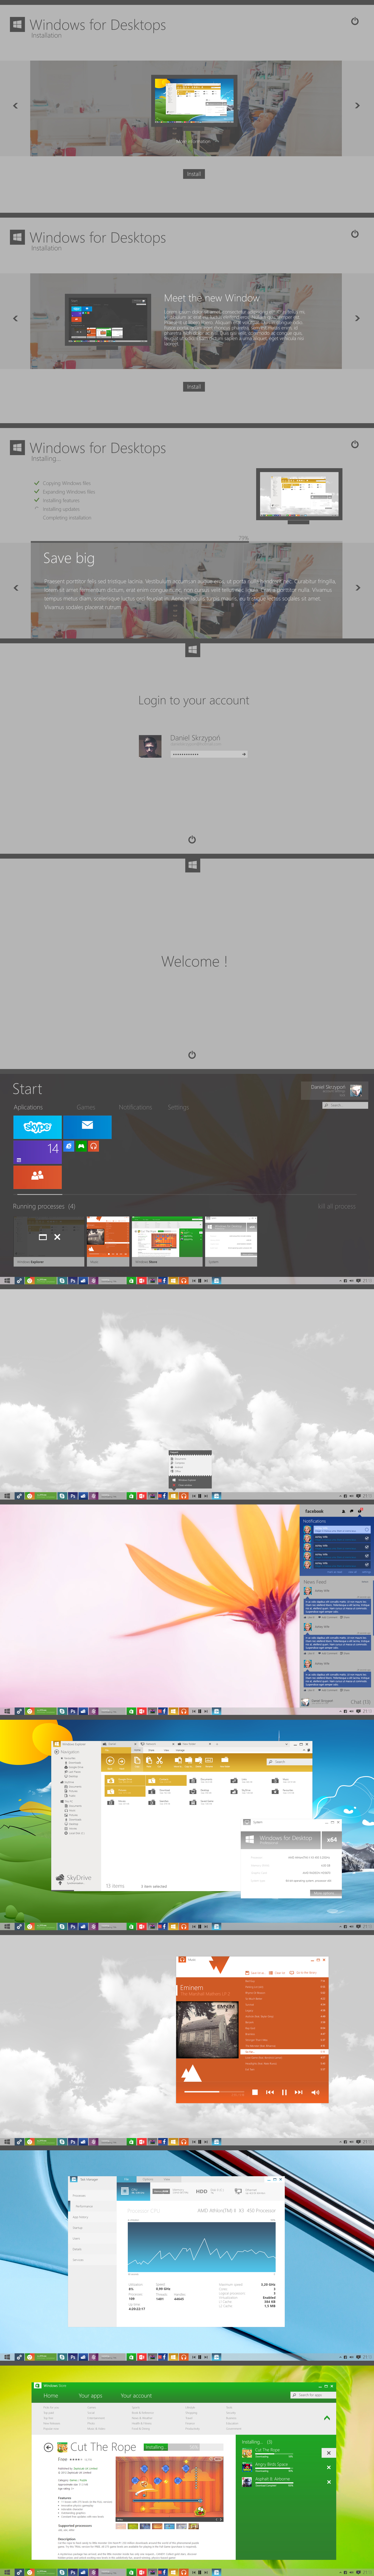 NEW Windows for Desktops - Concepts by danielskrzypon